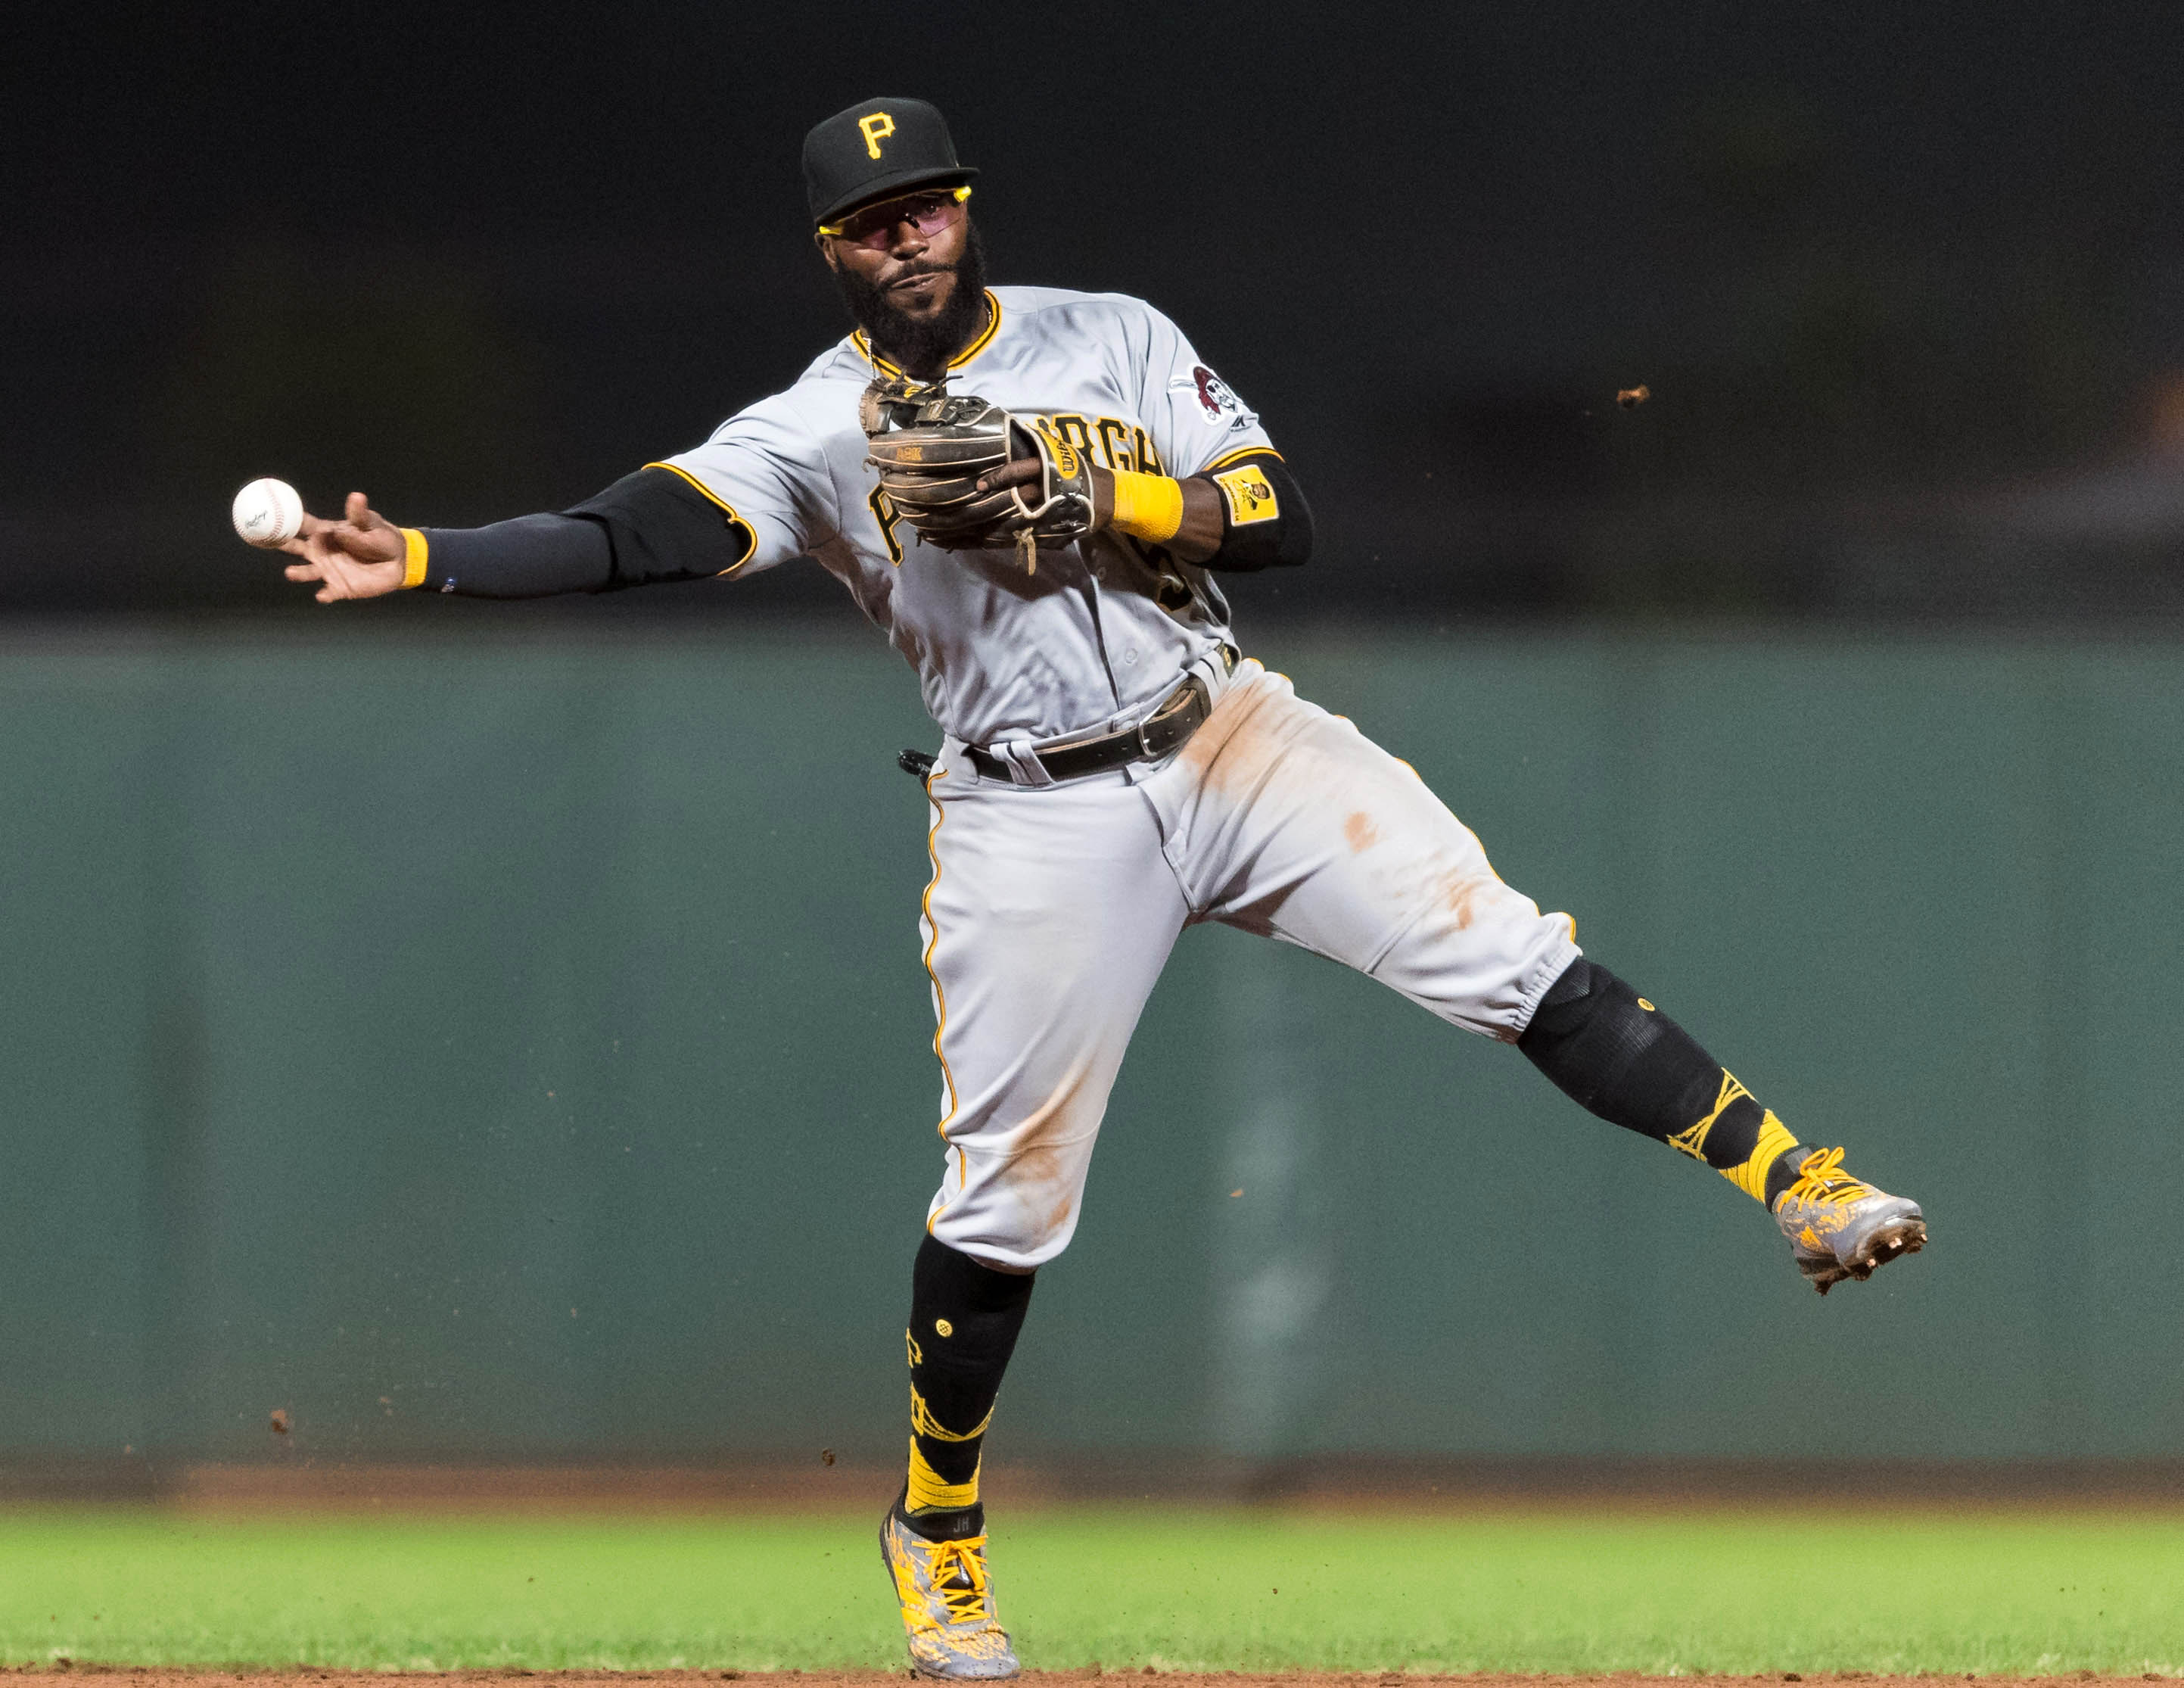 The Pittsburgh Pirates should wait to trade Josh Harrison